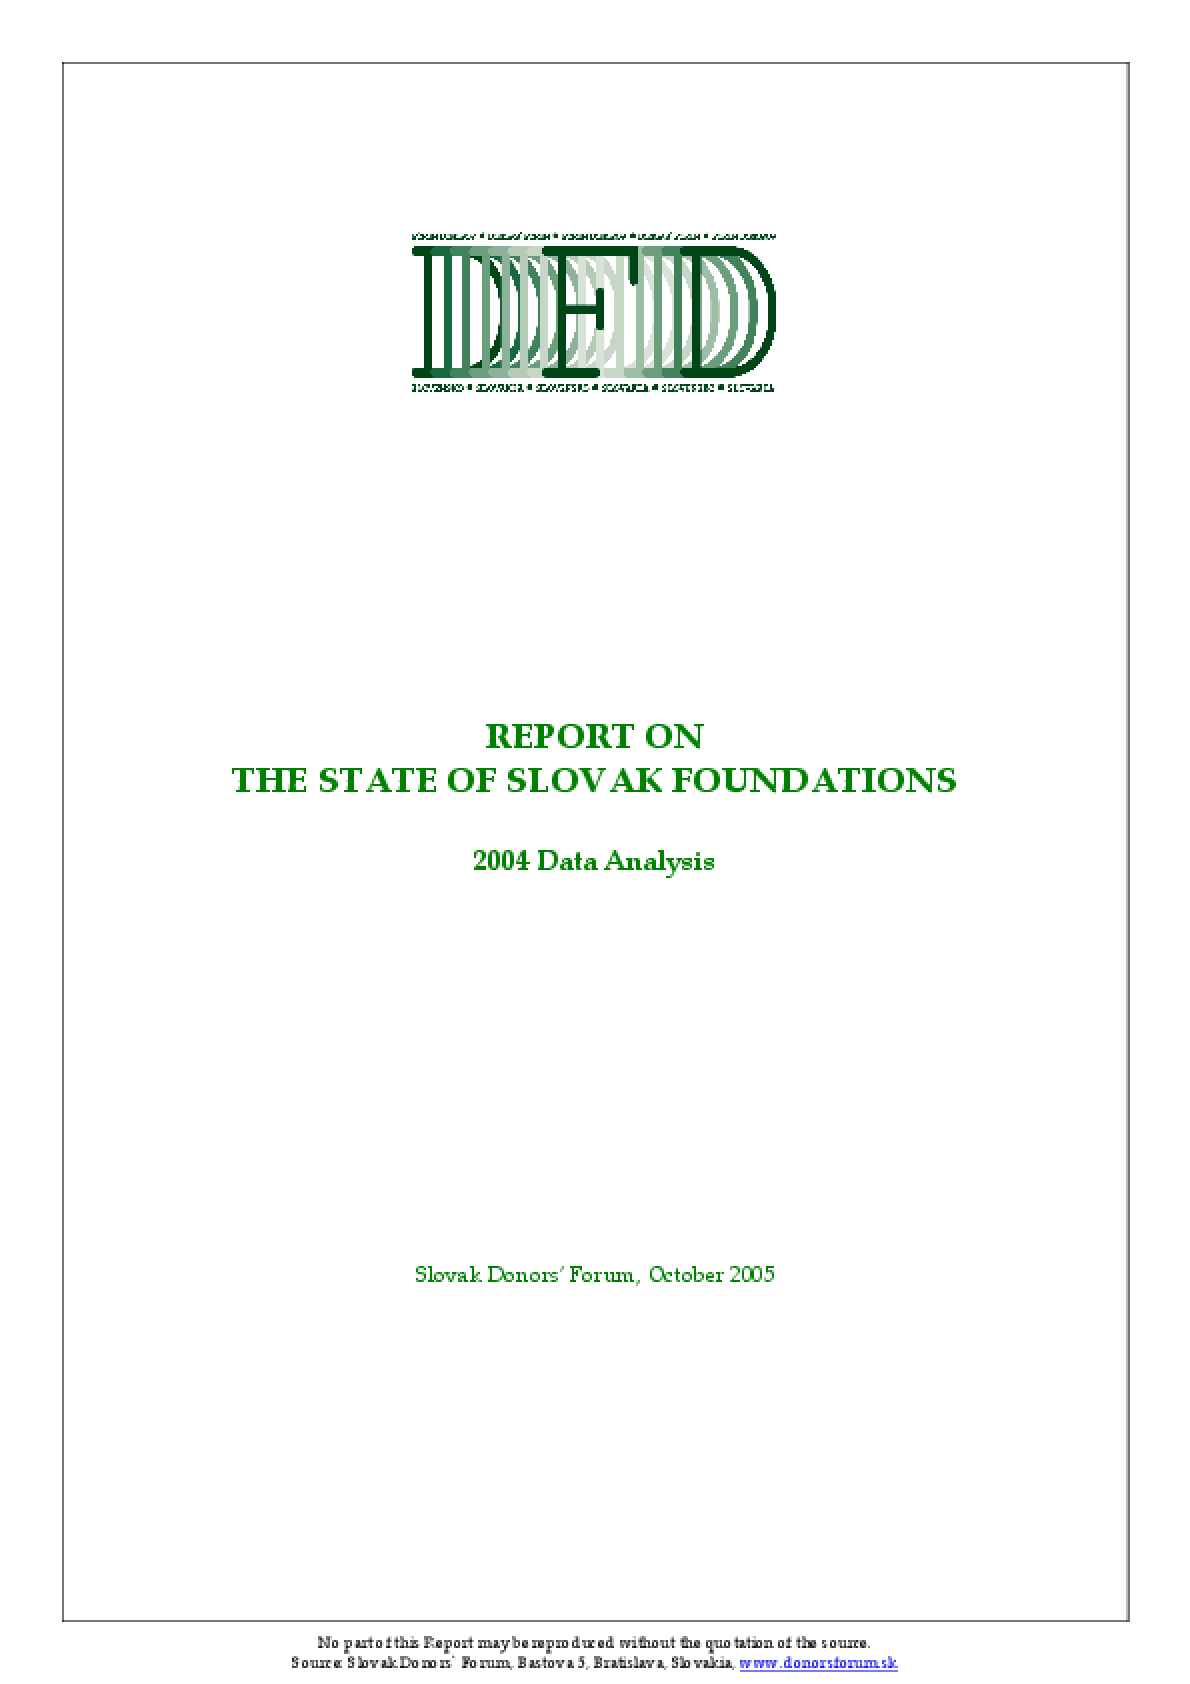 Report on the State of Slovak Foundations: 2004 Data Analysis